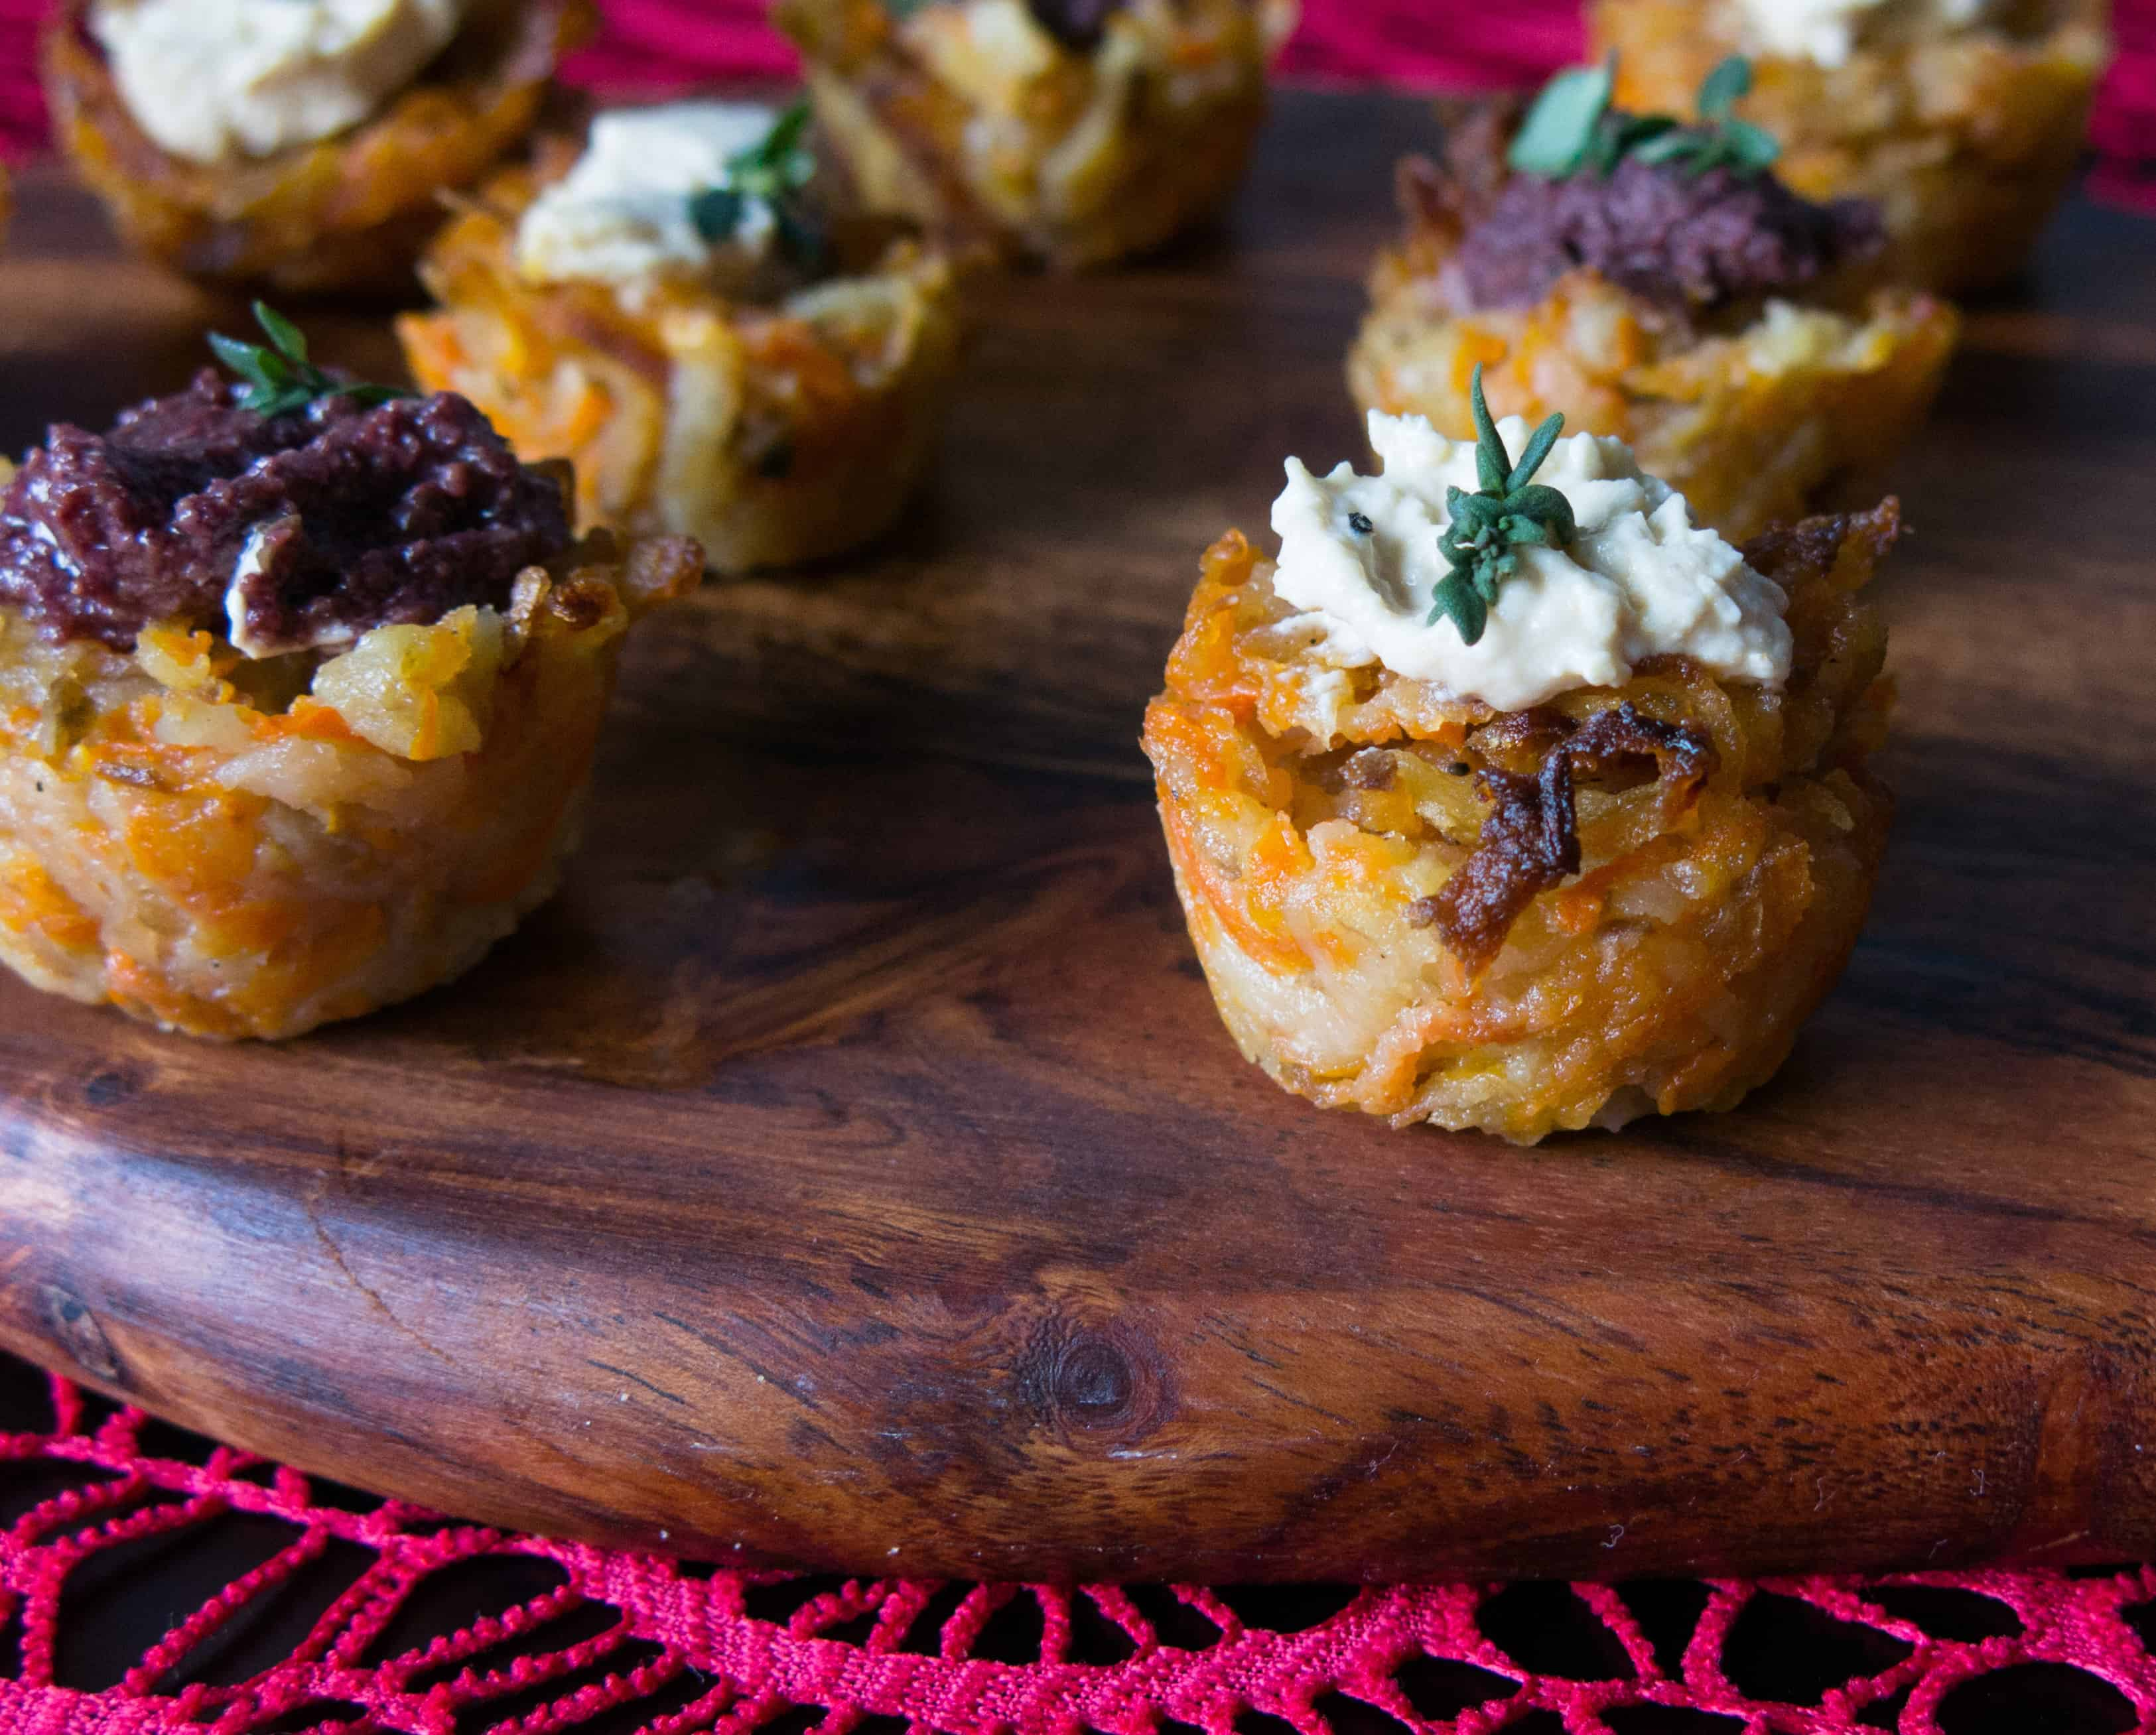 Potato and Butternut Squash Rosti. Canapes with black olive tapenade and houmous. Gluten free, vegan, onion free, garlic free